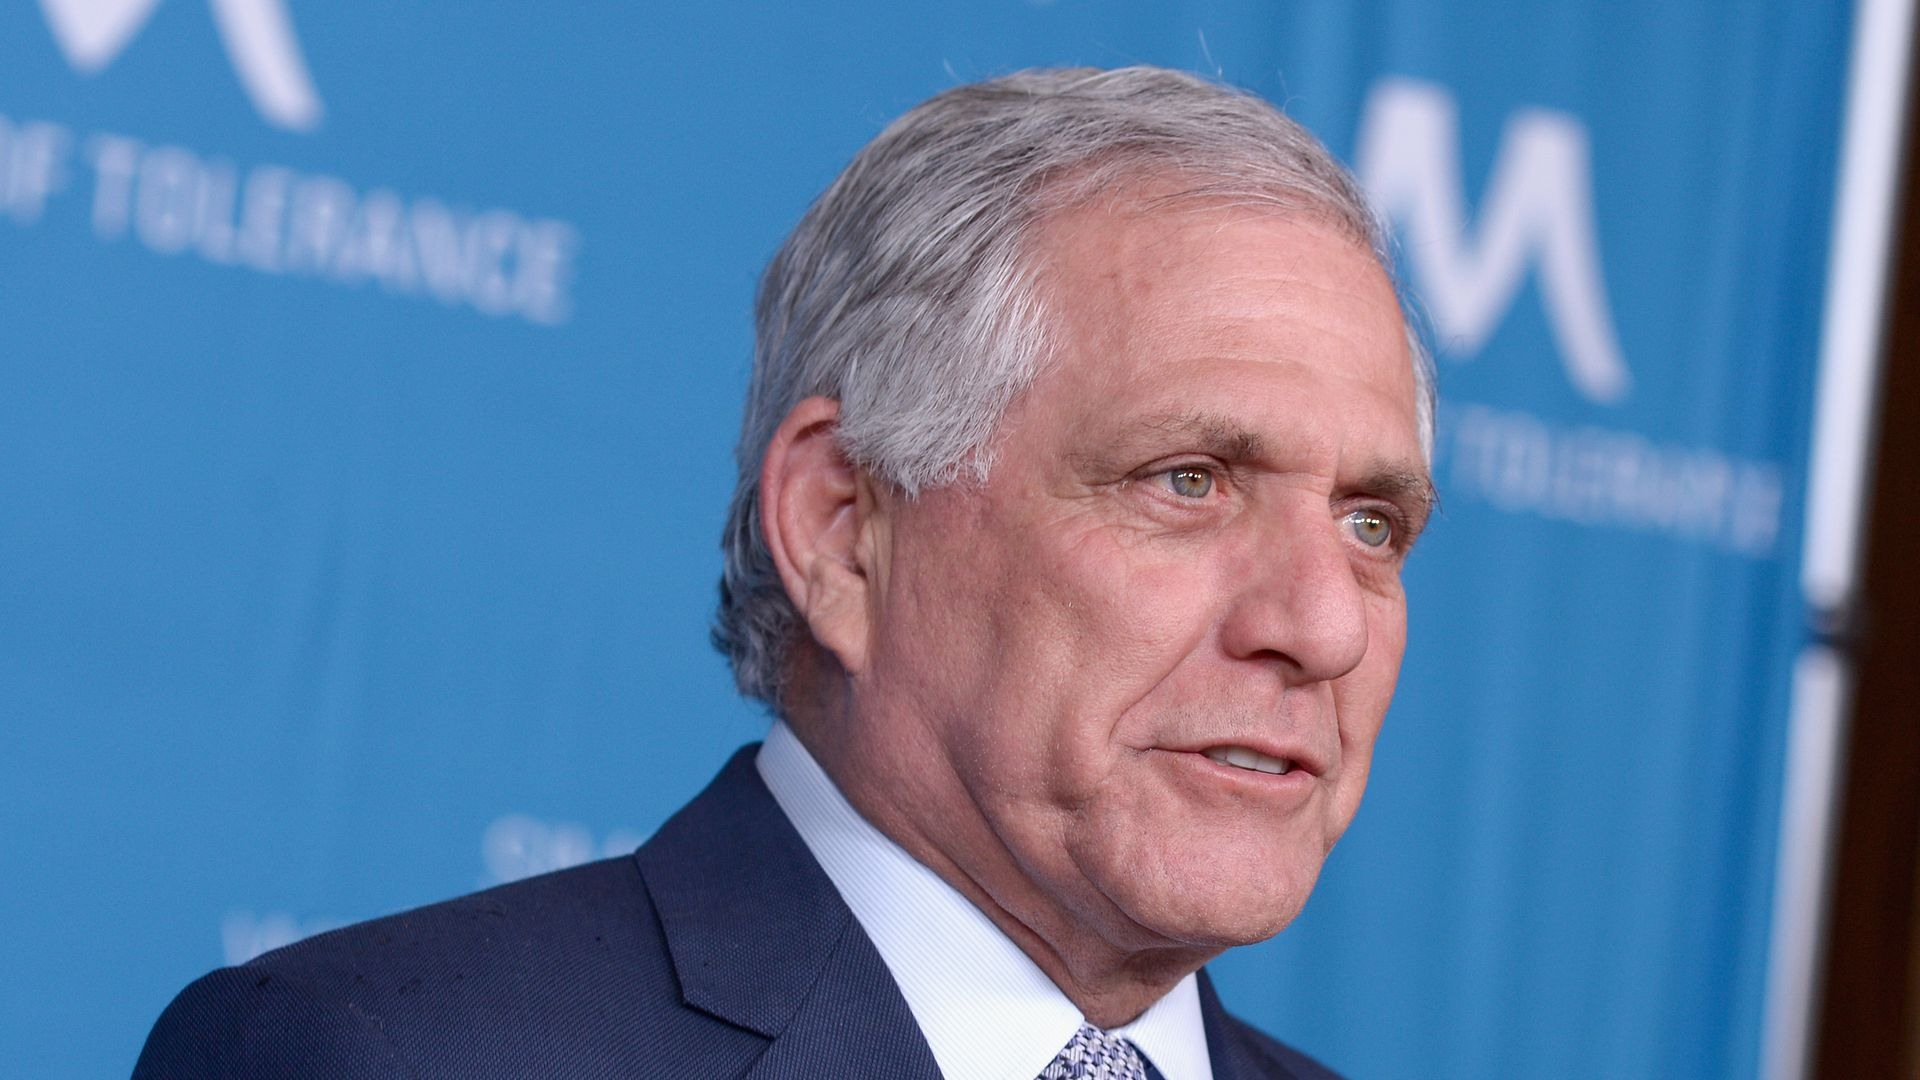 Les Moonves looks surprised.